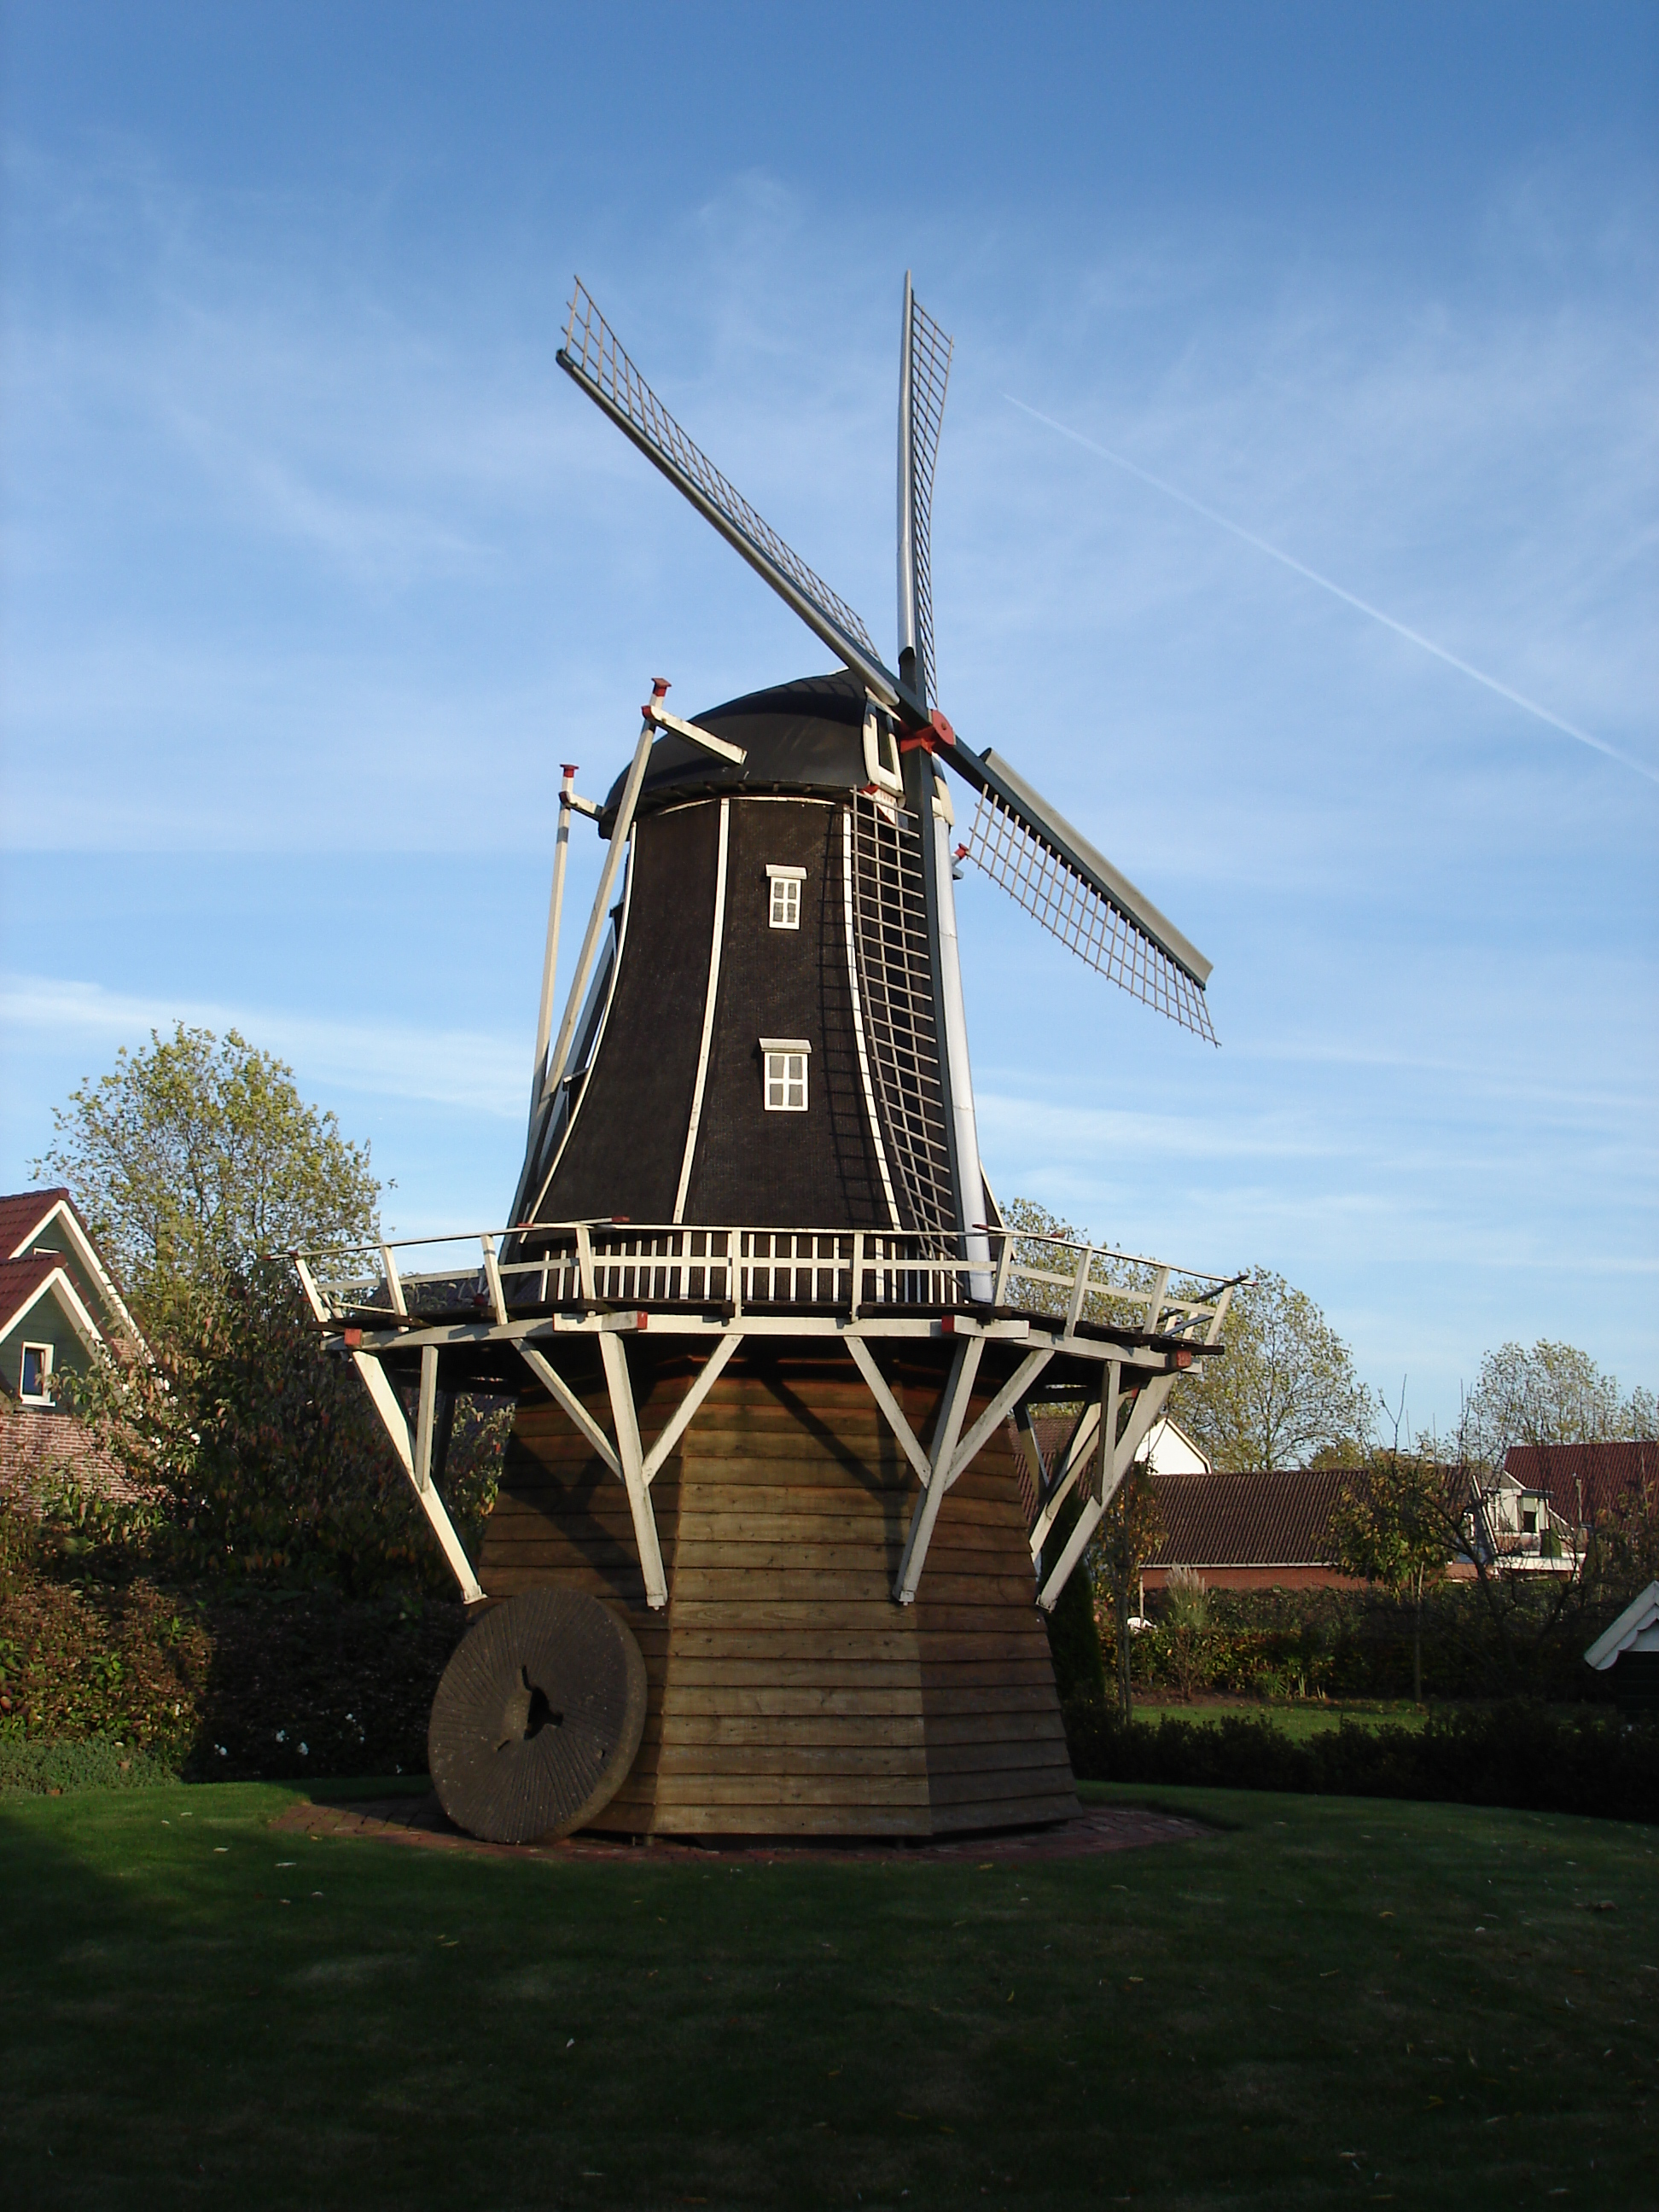 Ks De Vecht List Of Windmills In Gelderland Wikipedia